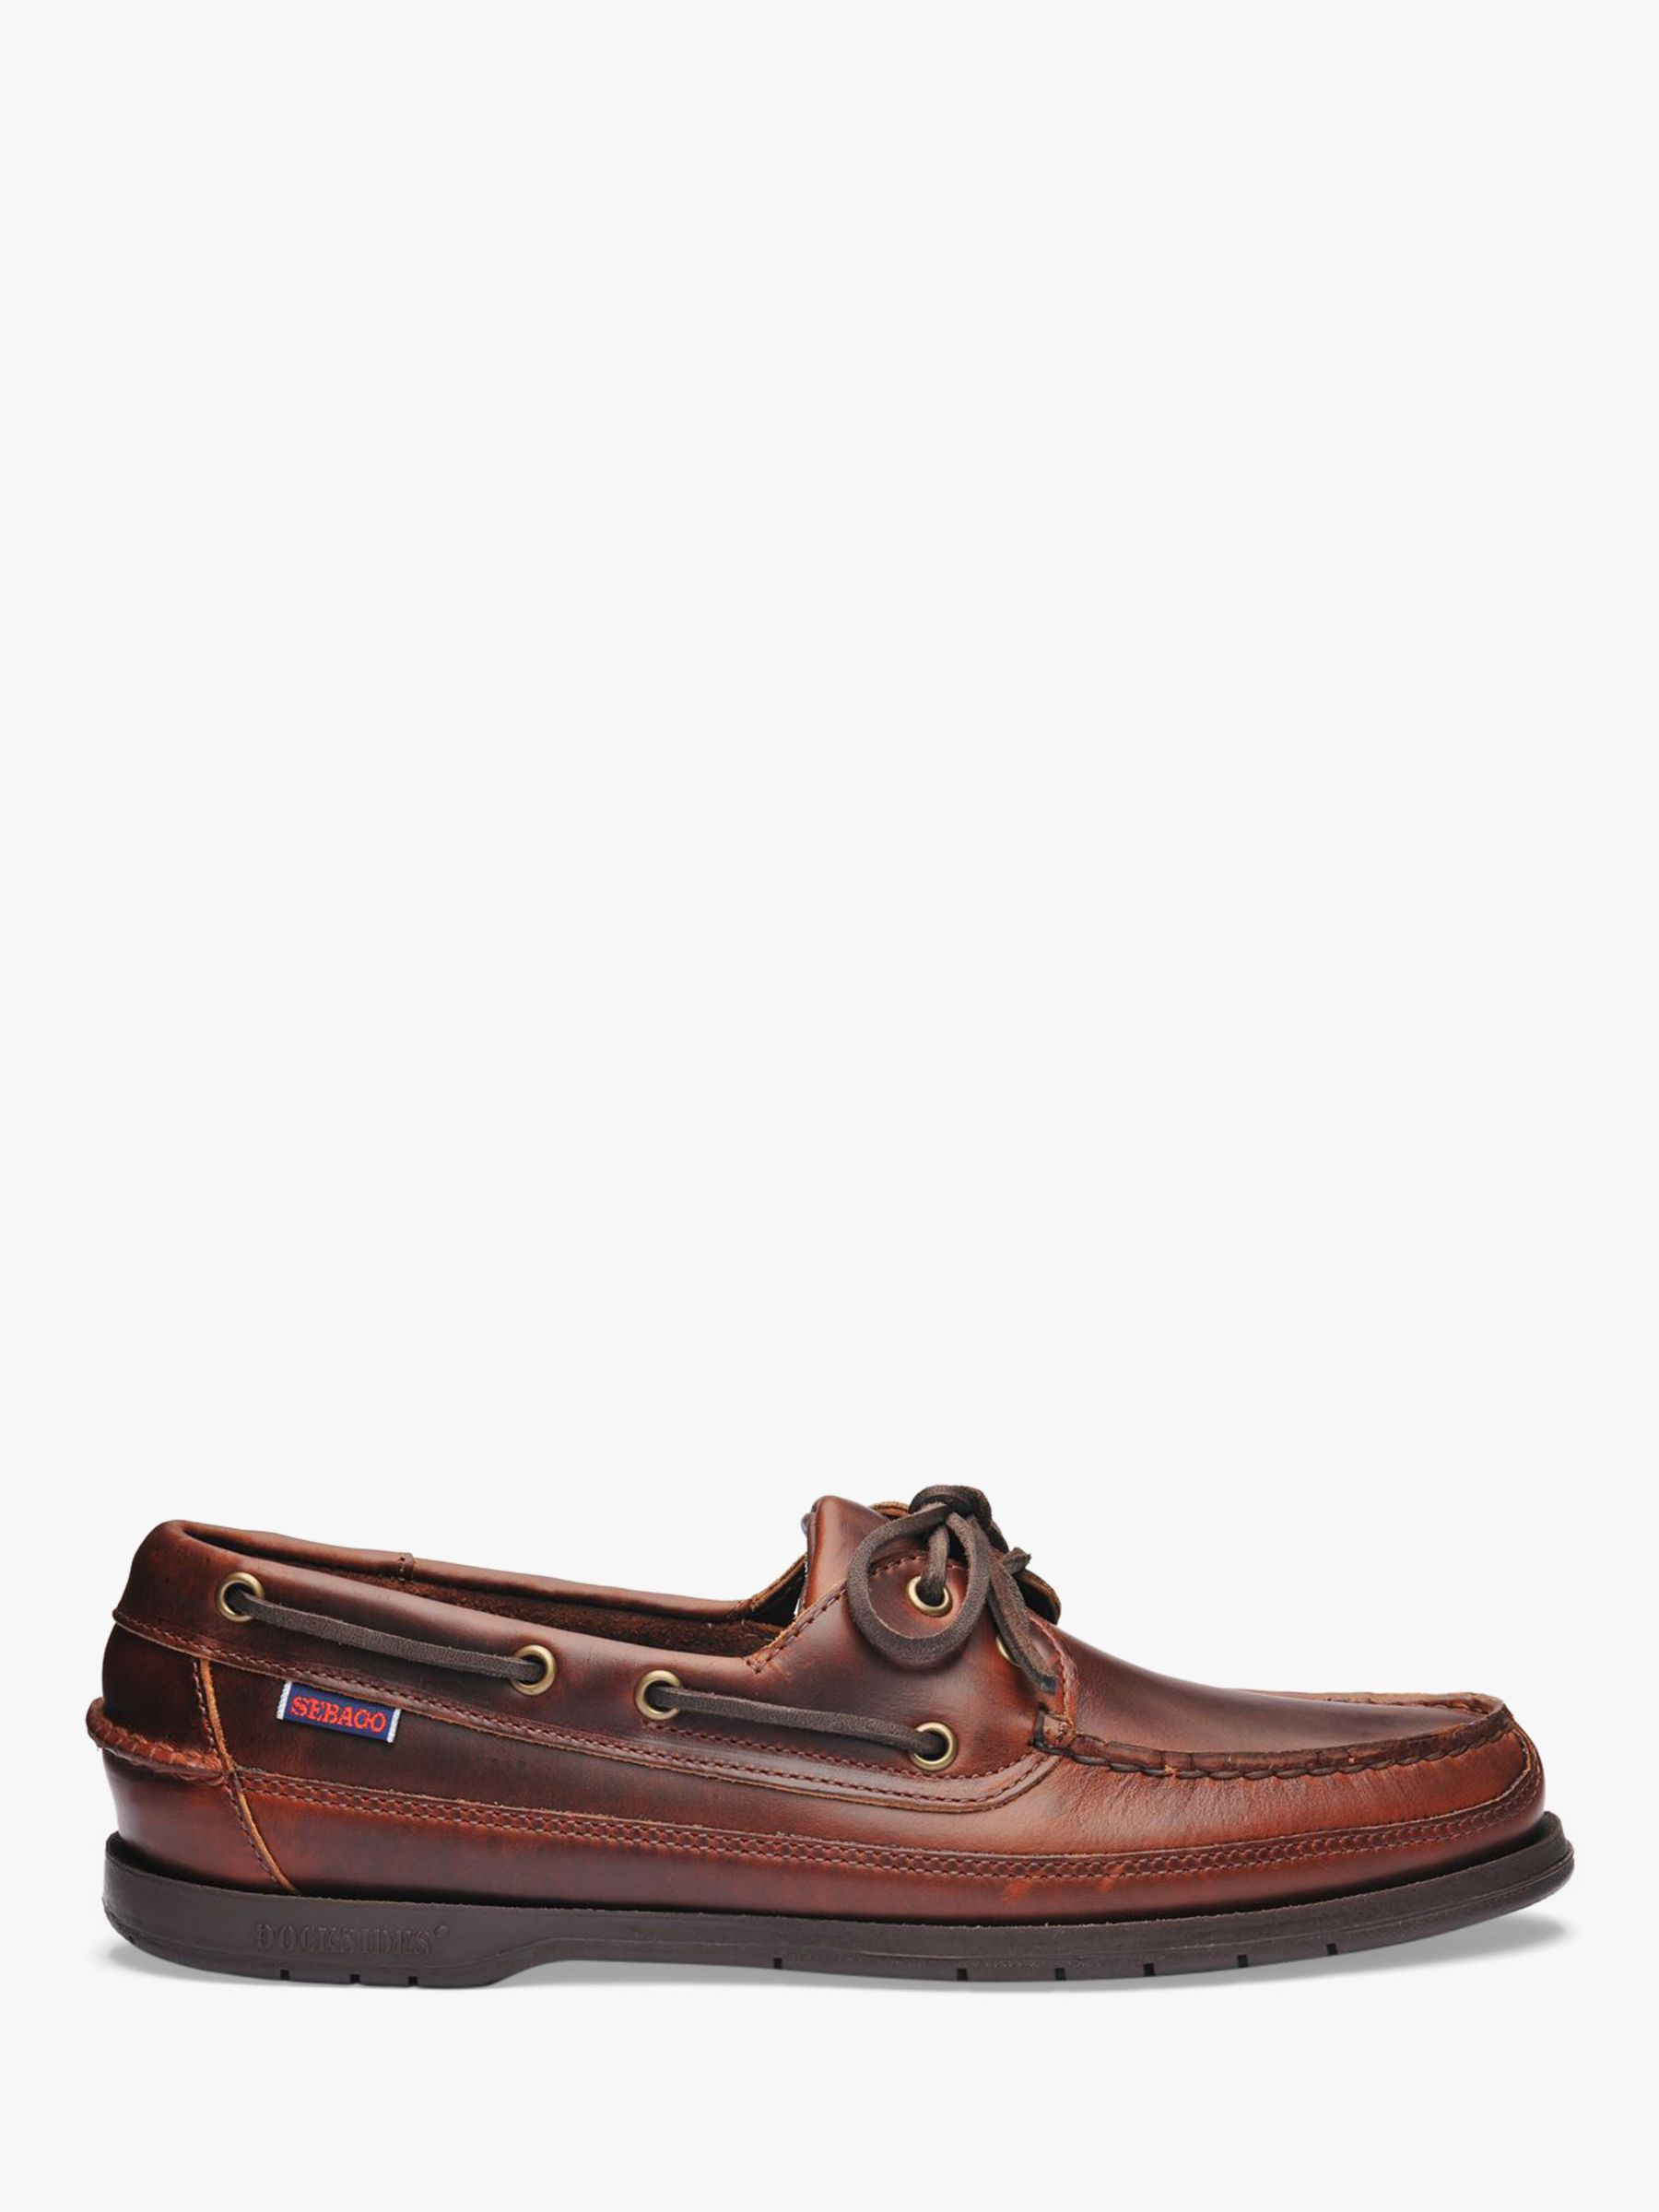 Sebago Sebago Schooner Leather Boat Shoes, Brown